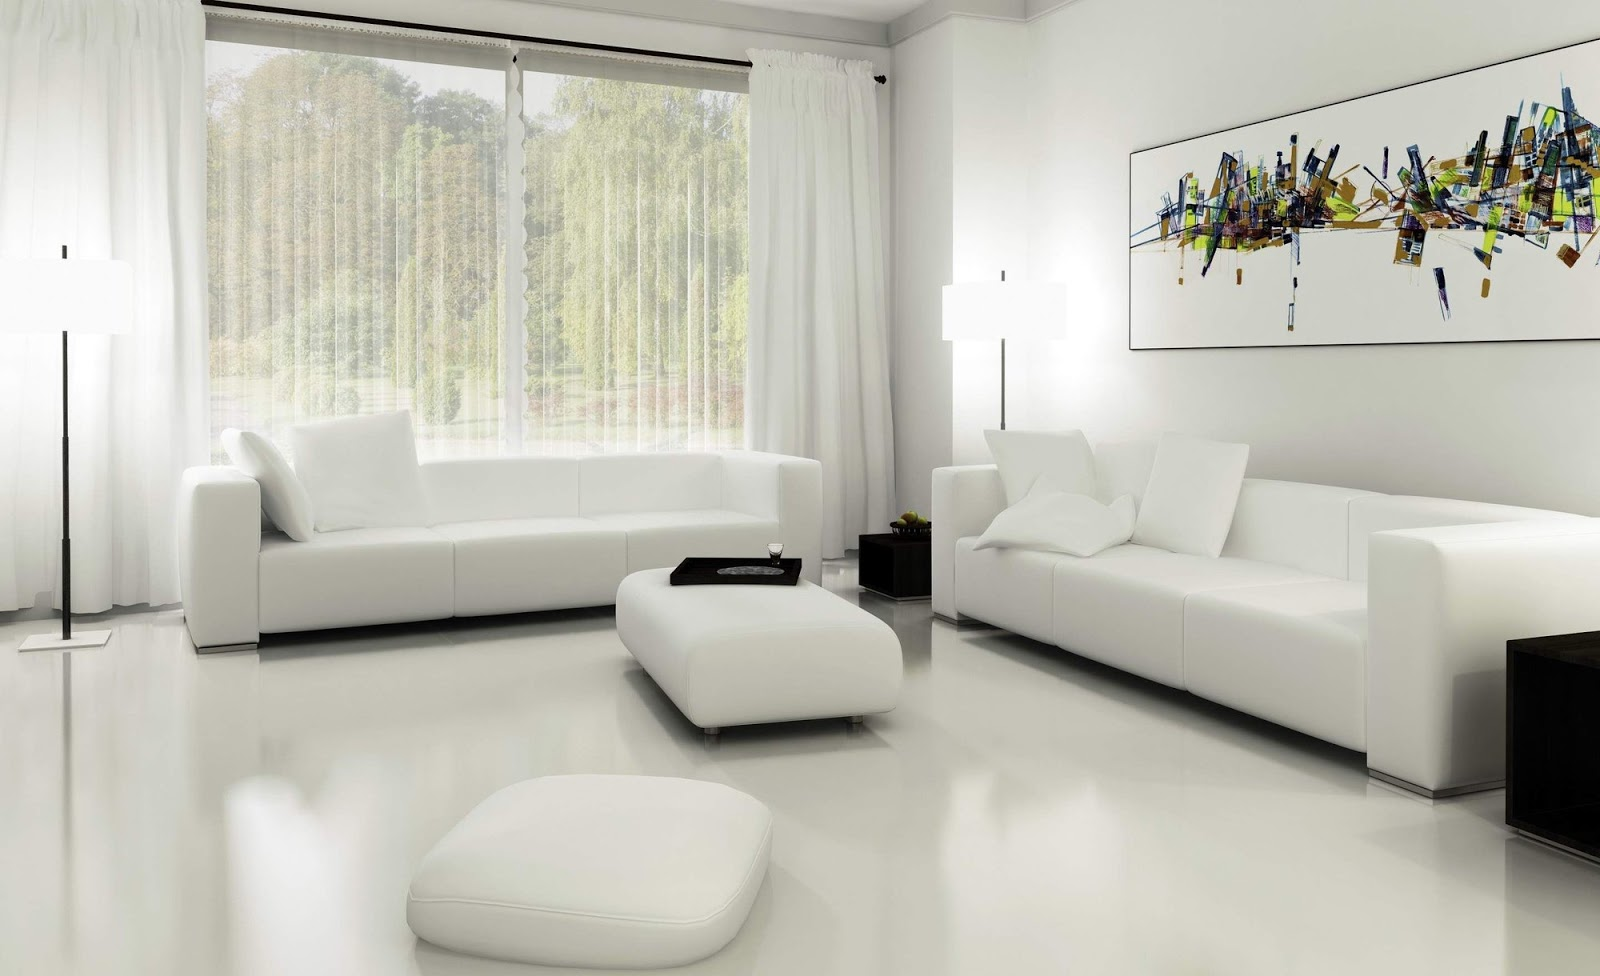 The White Living Room Curtains Ideas! RR Interiors